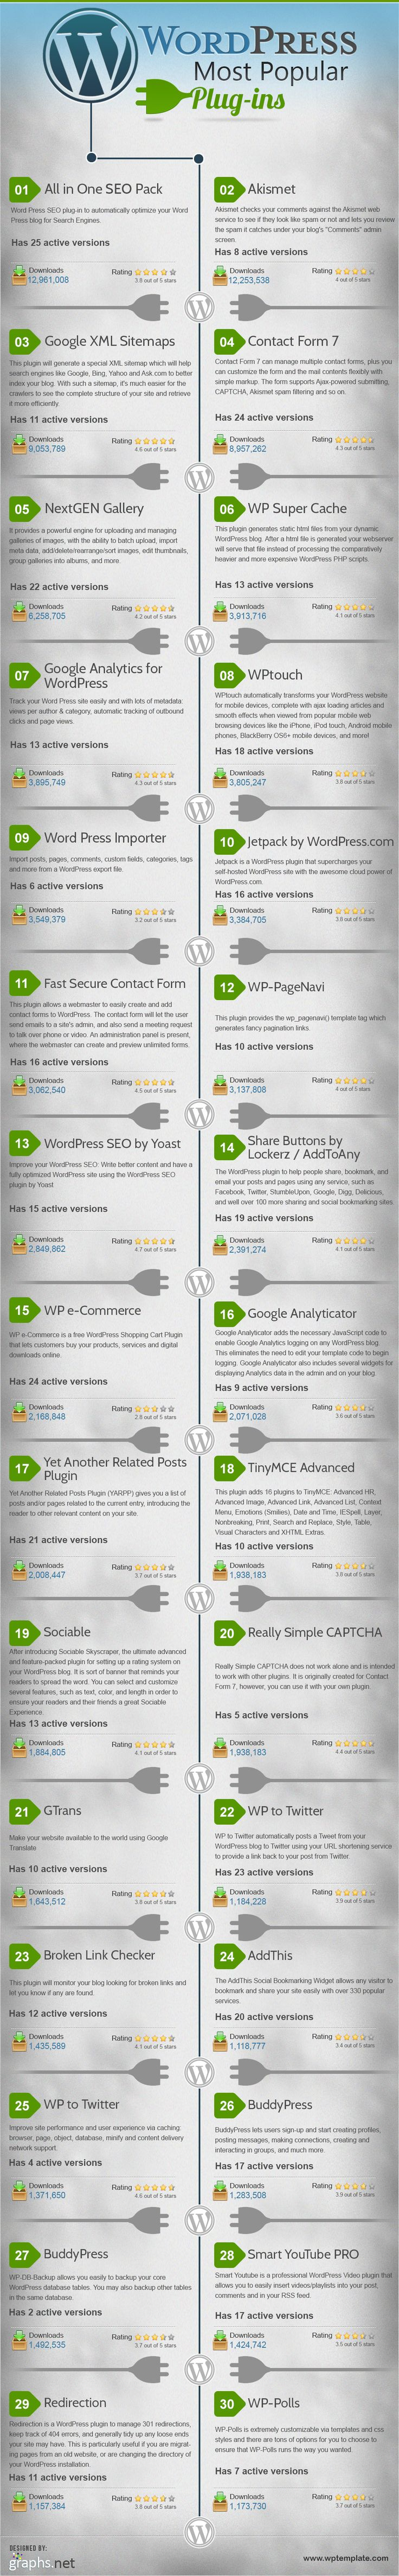 30 Most Popular WordPress Plugin-ins [Infographic]